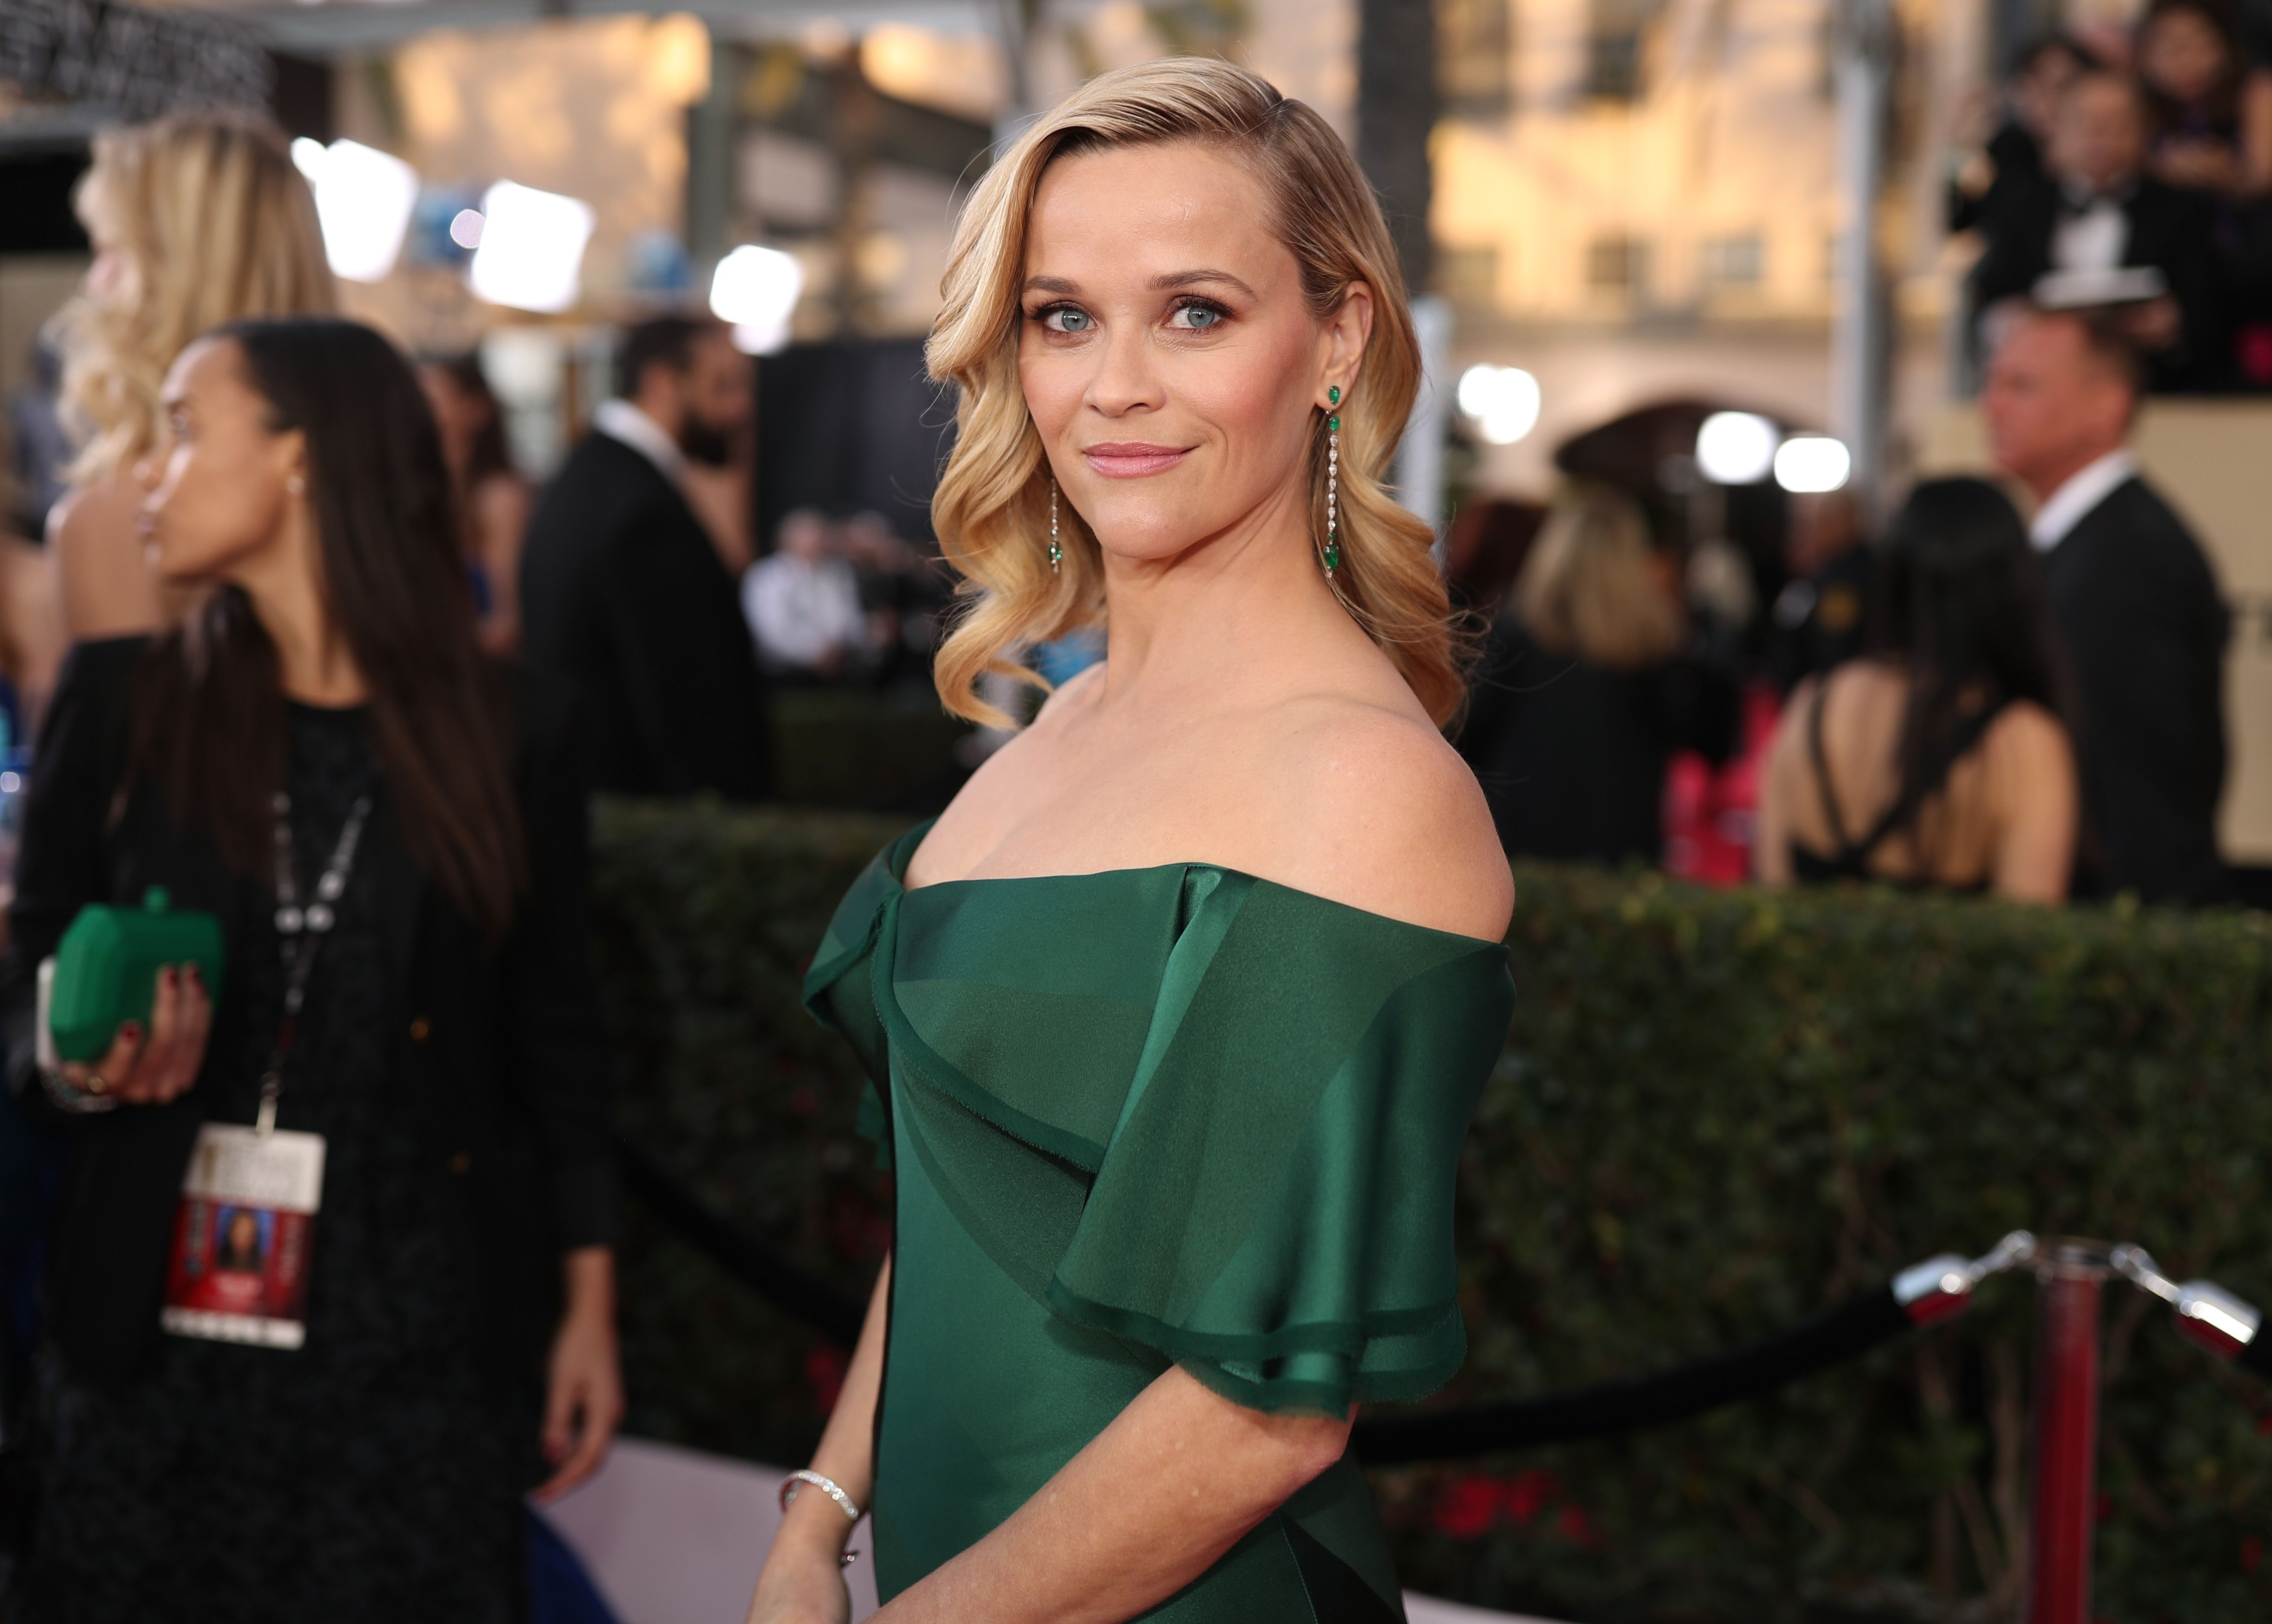 Reese Witherspoon at the 24th Annual Screen Actors Guild Awards at The Shrine Auditorium on January 21, 2018 | Photo: Getty Images